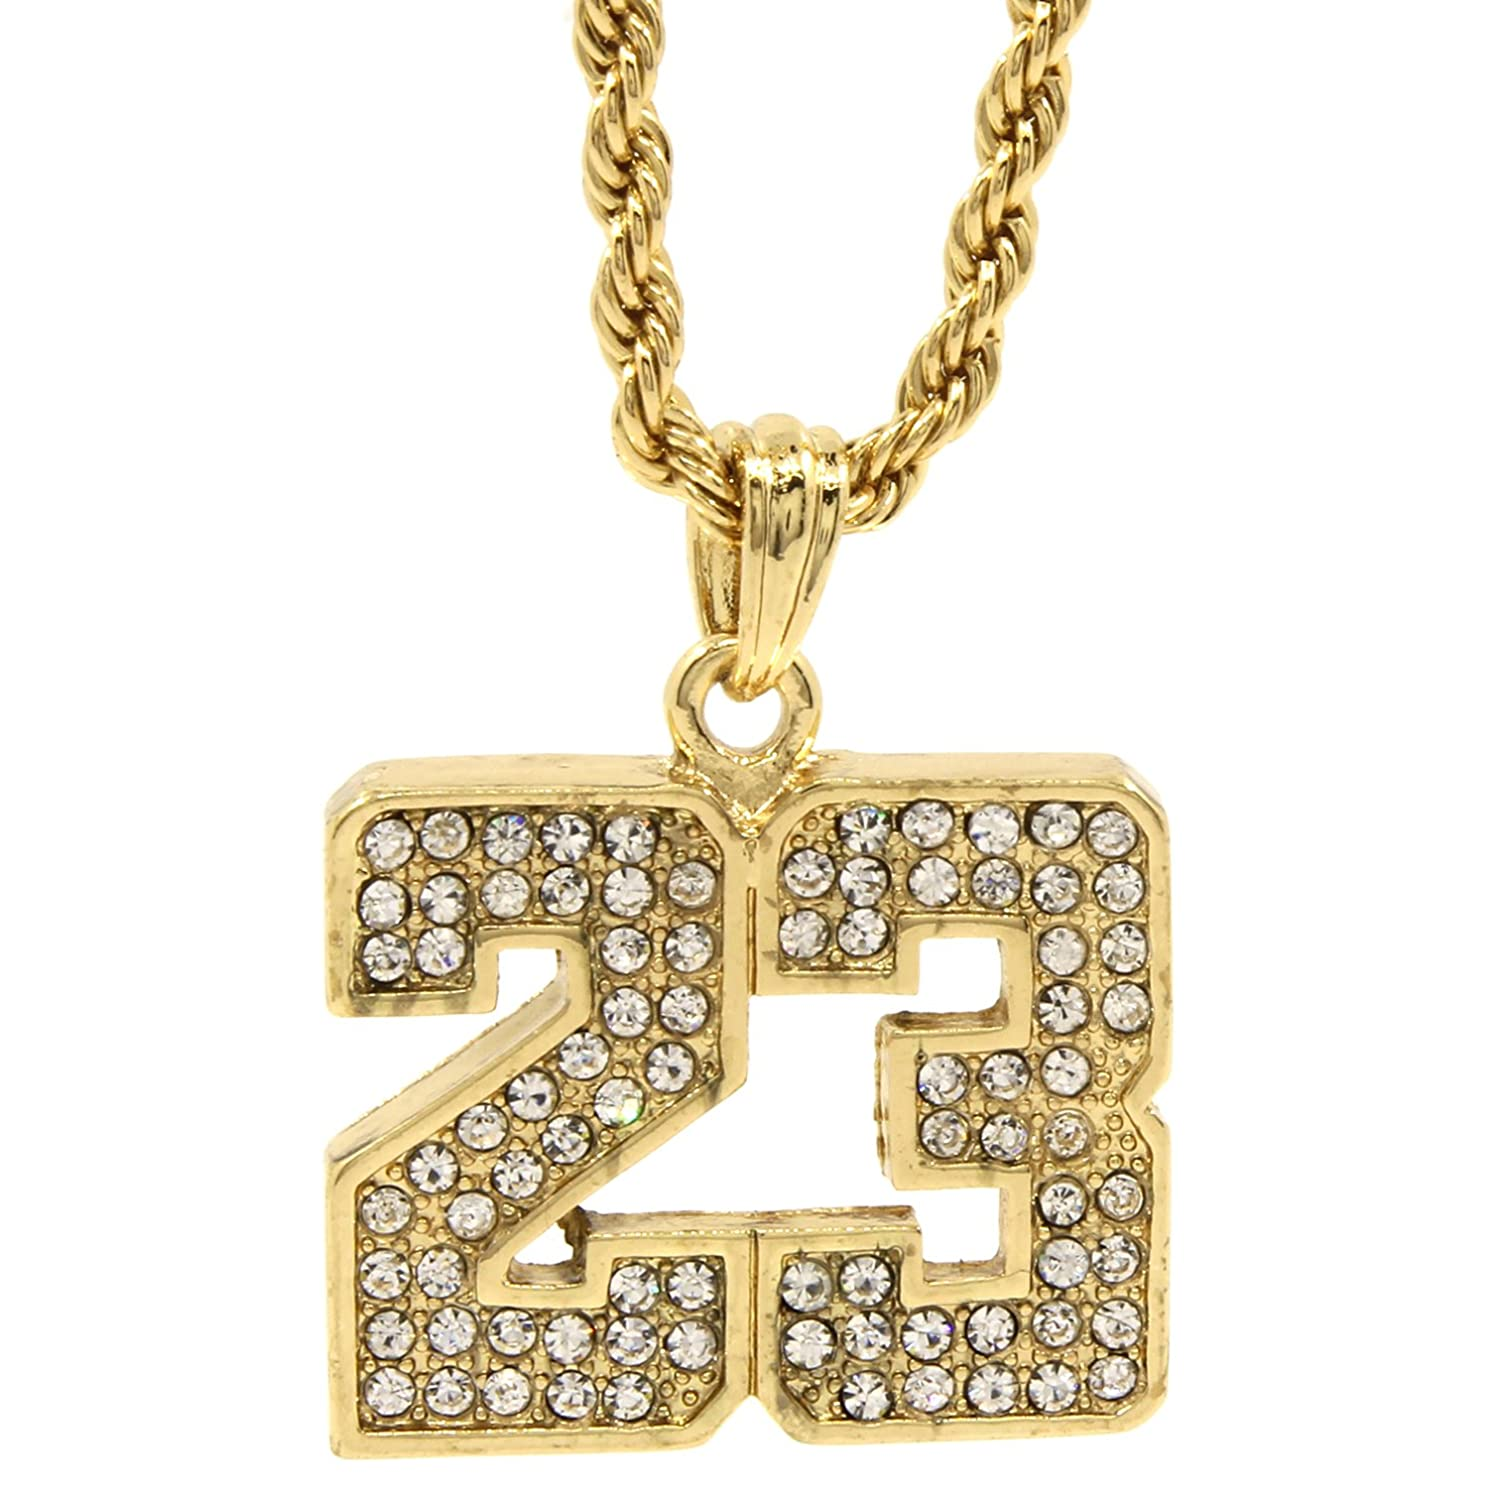 Mens 14k gold plated iced out 23 basketball pendant 24 rope chain mens 14k gold plated iced out 23 basketball pendant 24 rope chain hip hop necklace d472 amazon mozeypictures Gallery